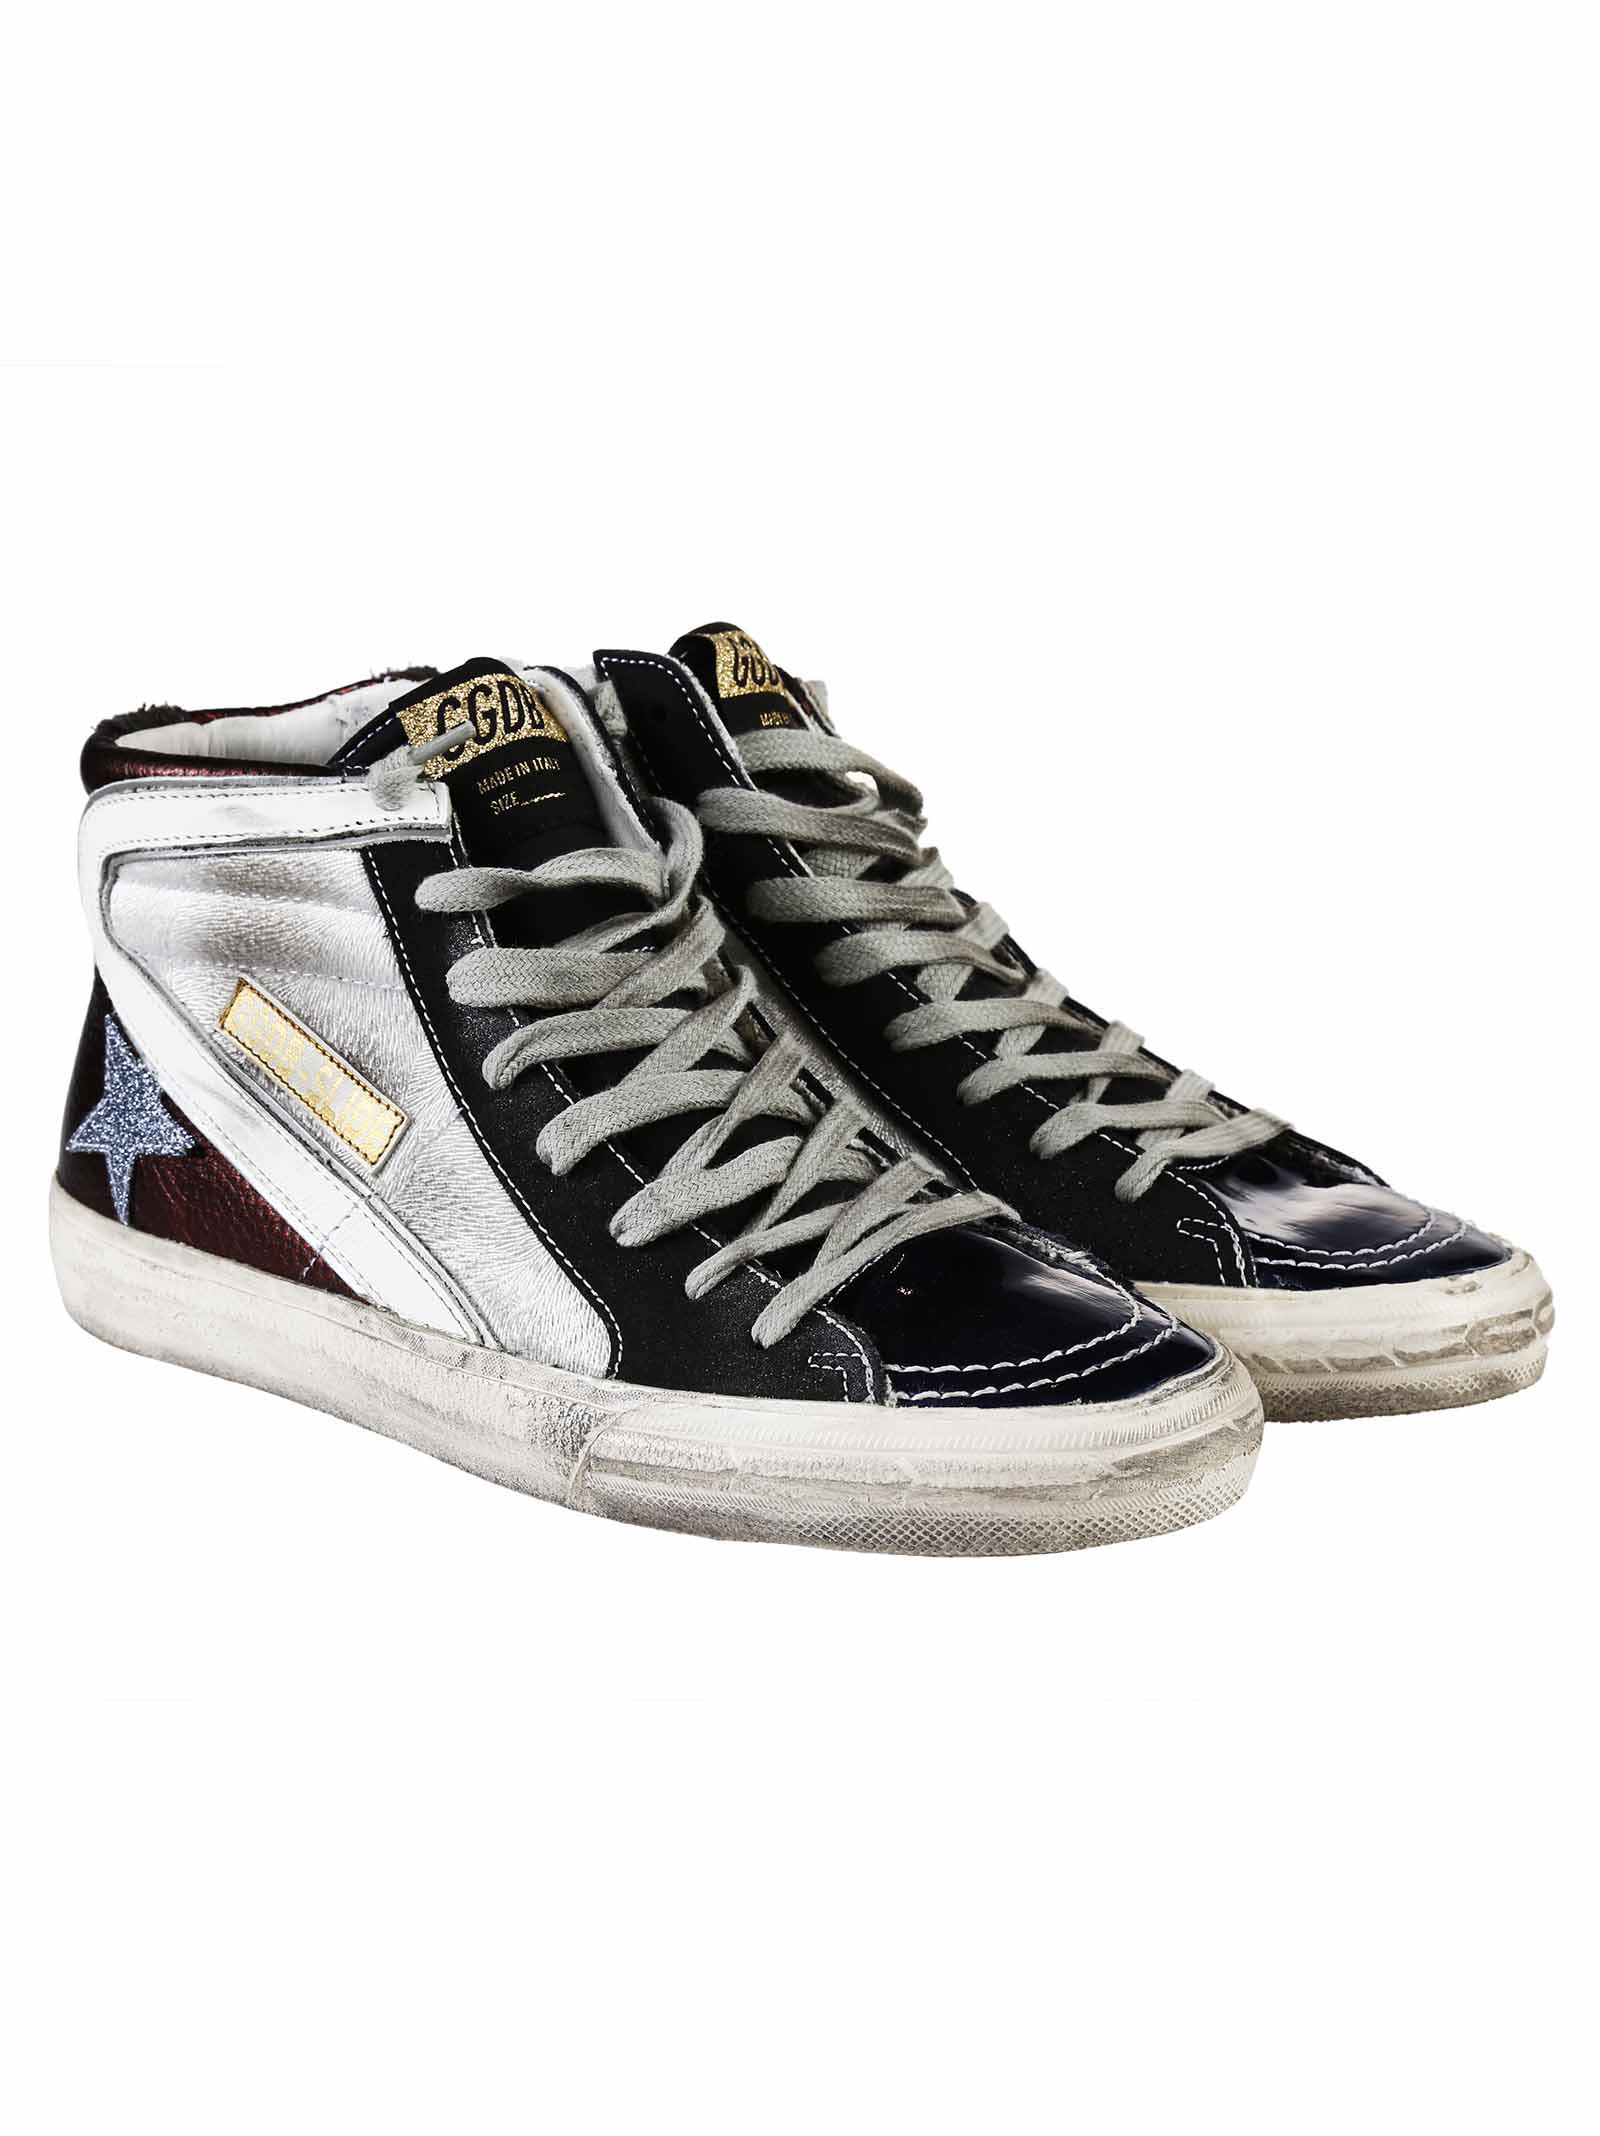 golden goose golden goose slide leather sneakers g27d124 n3 women 39 s sneakers italist. Black Bedroom Furniture Sets. Home Design Ideas